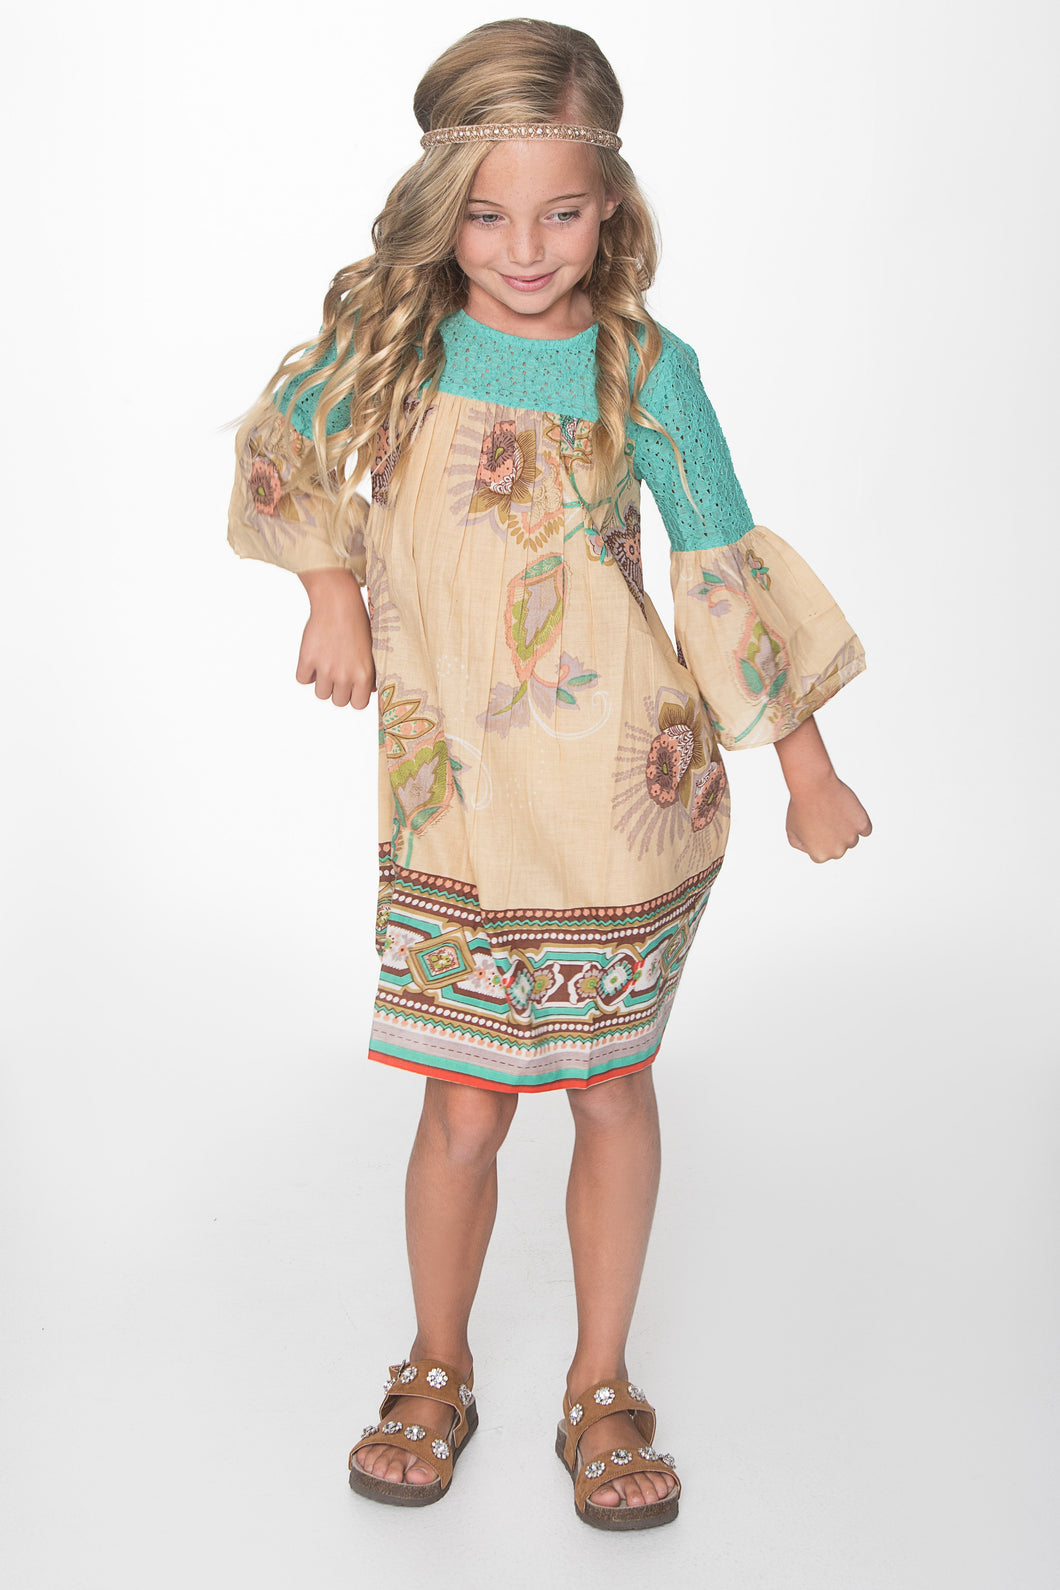 Teal and Beige Bell Sleeves Dress - Kids Clothing, Dress - Girls Dress, Yo Baby Online - Yo Baby